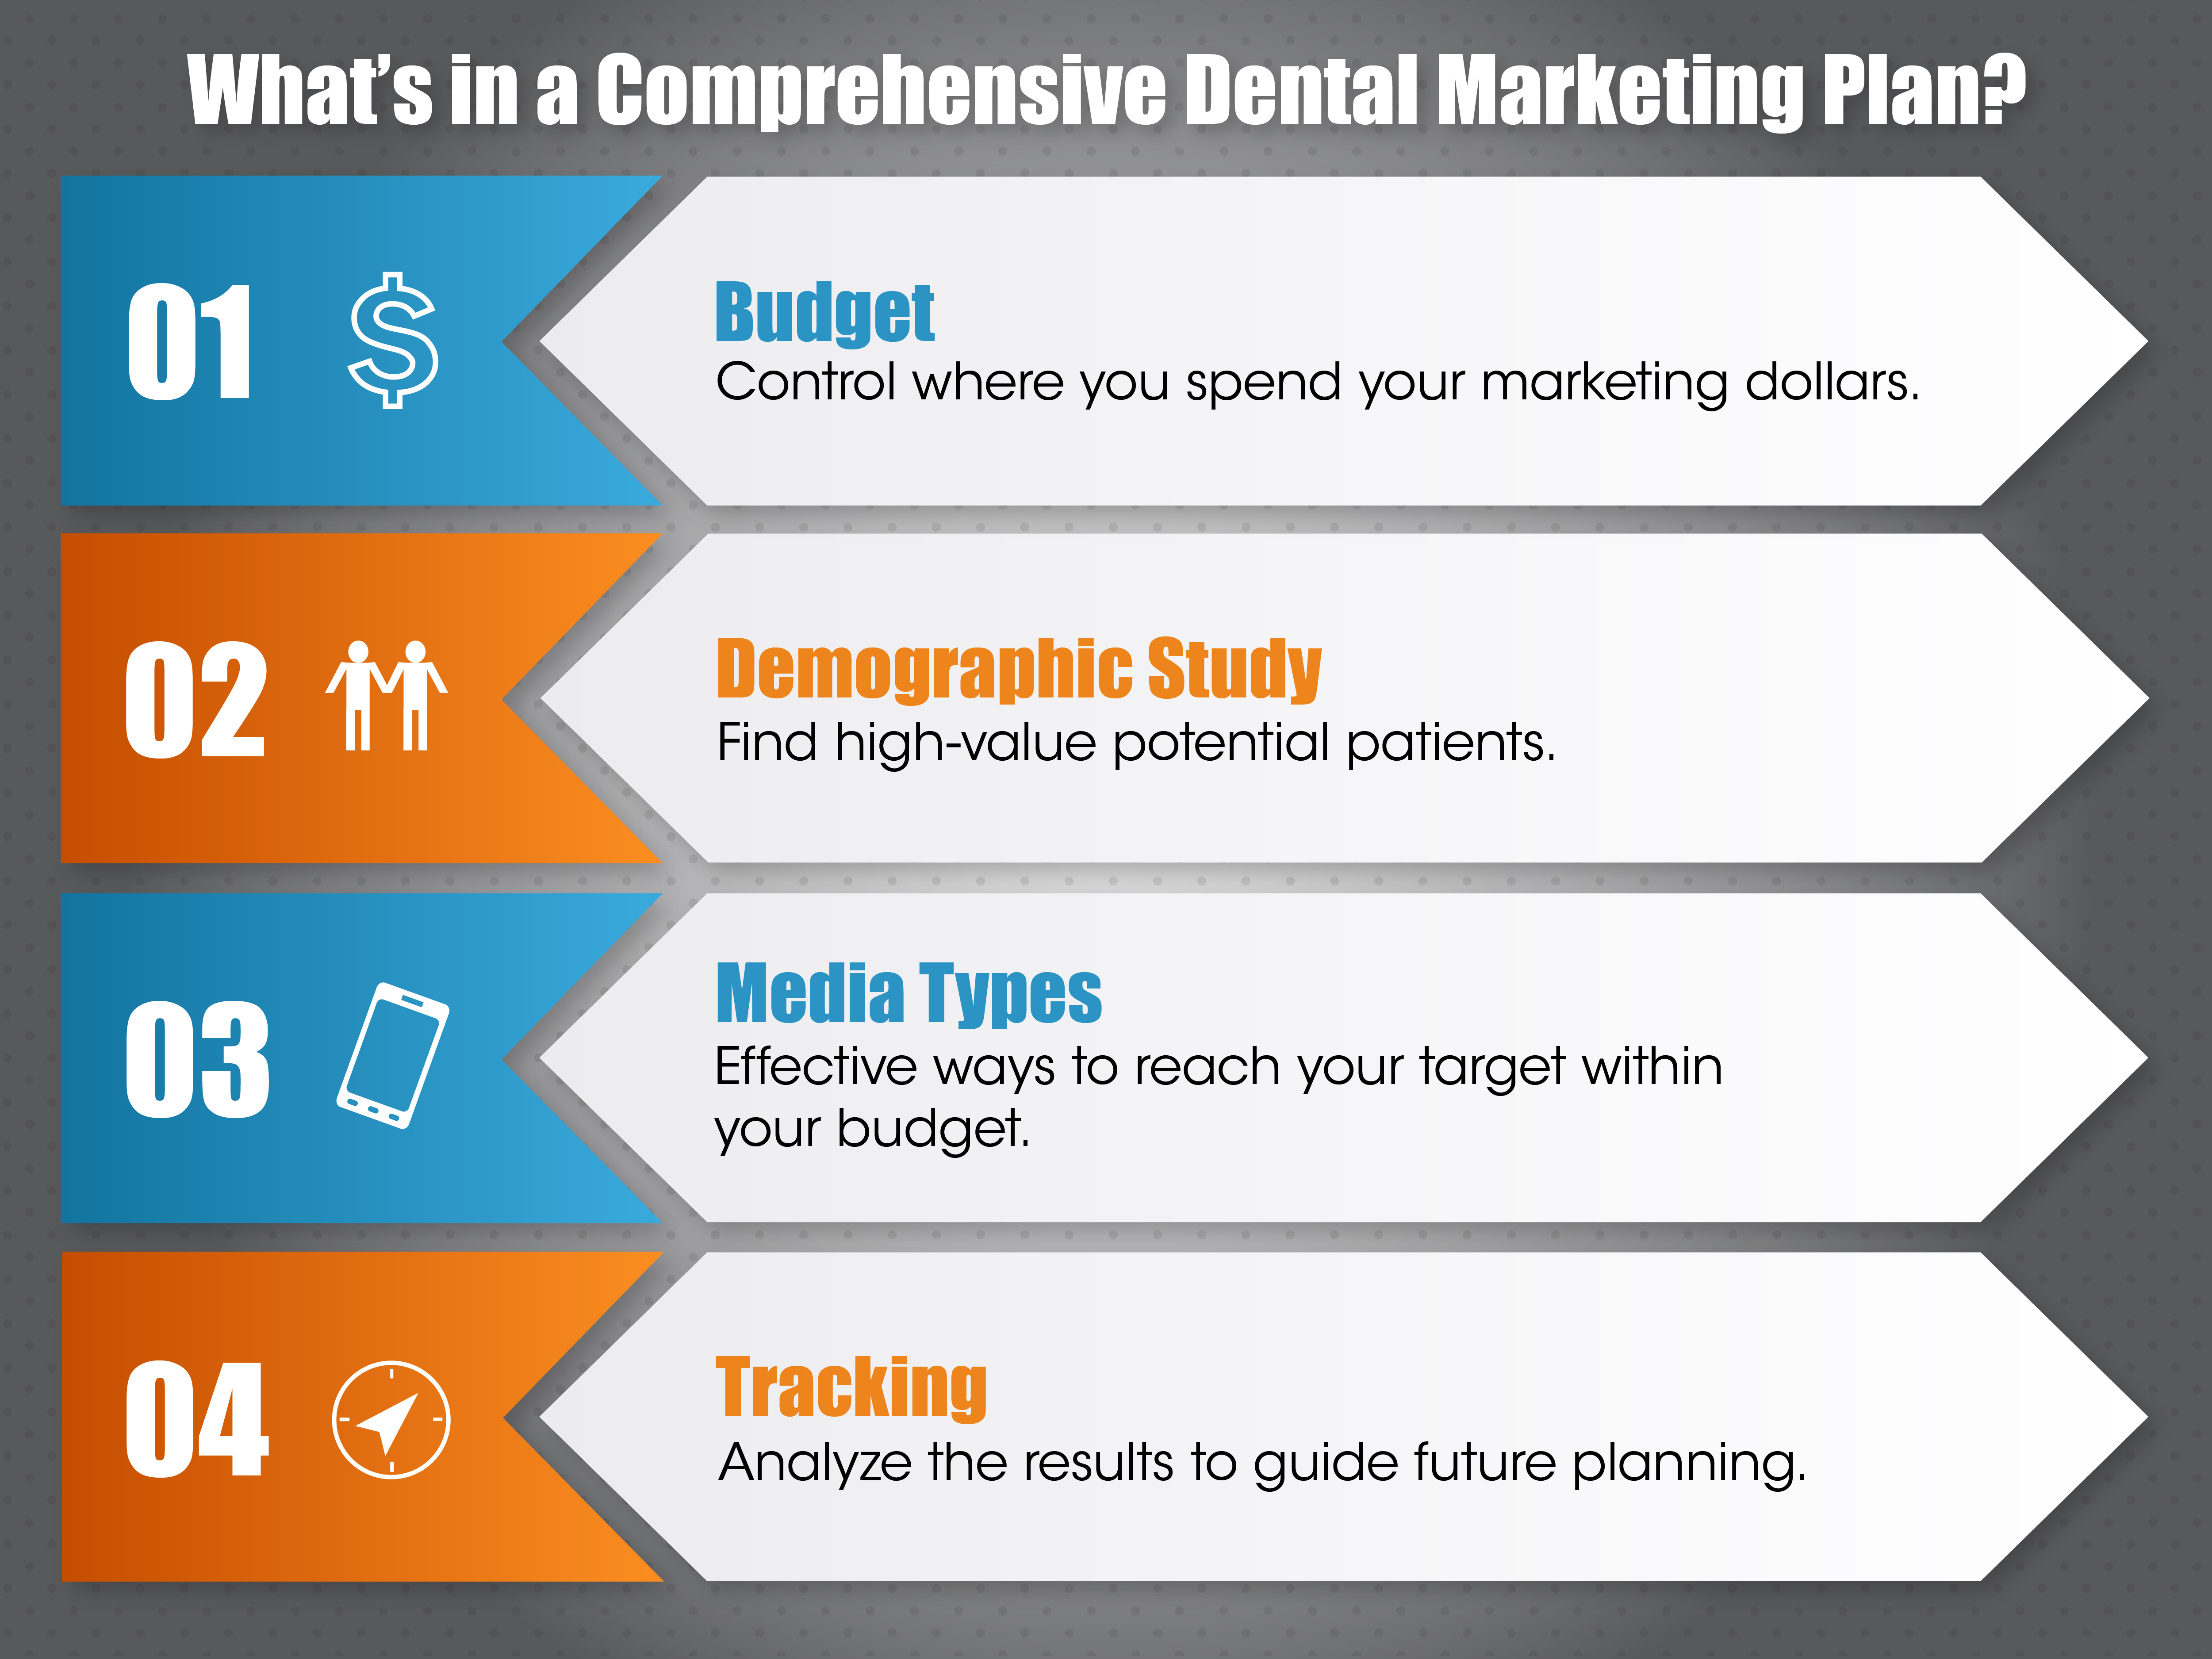 What Goes Into a Comprehensive Dental Marketing Plan